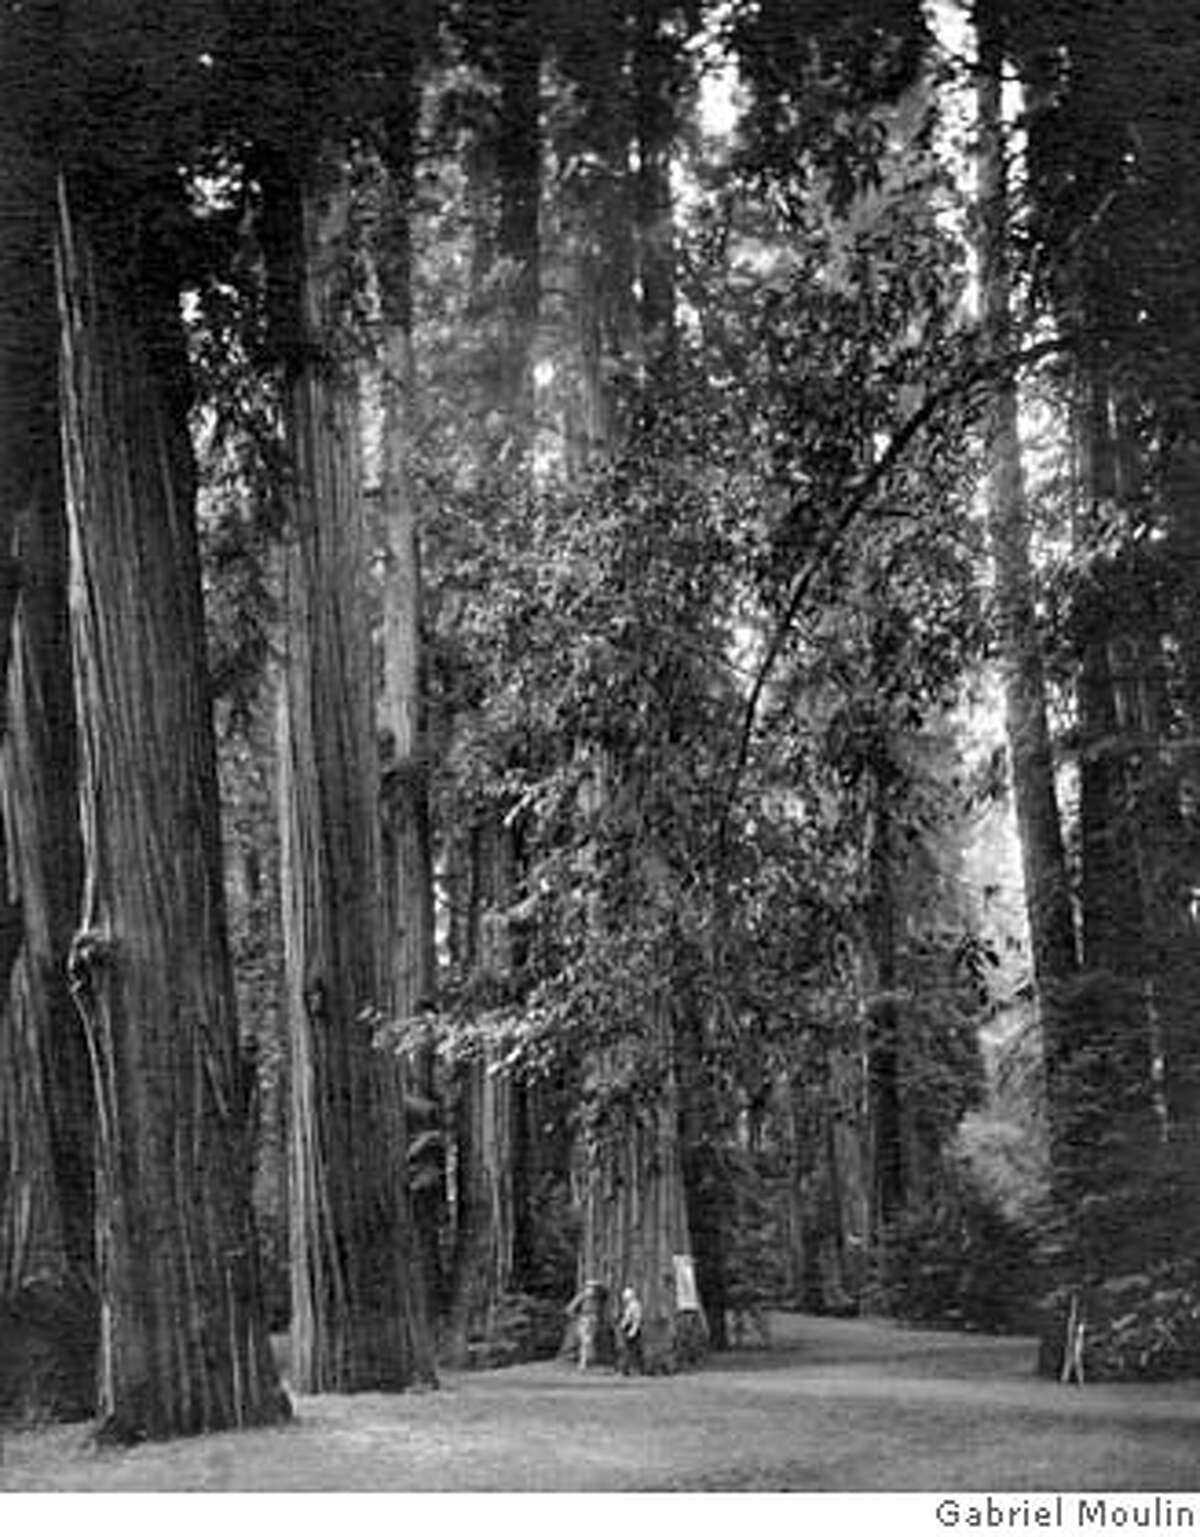 ###Live Caption:Some of the giant redwoods in the Bohemian Grove are 300 feet tall and 1,000 years old. Ran on: 07-12-2007 Ancient redwoods in the Bohemian Grove have lured members to the woodland for 135 years.###Caption History:PRIVATECLUBS BOHEMIAN CLUB GABRIEL MOULIN PHOTO, 153 KEARNY ST., SF, CA Ran on: 07-12-2007 Some of the giant redwoods in the Bohemian Grove are 300 feet tall and 1,000 years old. Ran on: 07-12-2007 Ancient redwoods in the Bohemian Grove have lured members to the woodland for 135 years.###Notes:###Special Instructions: